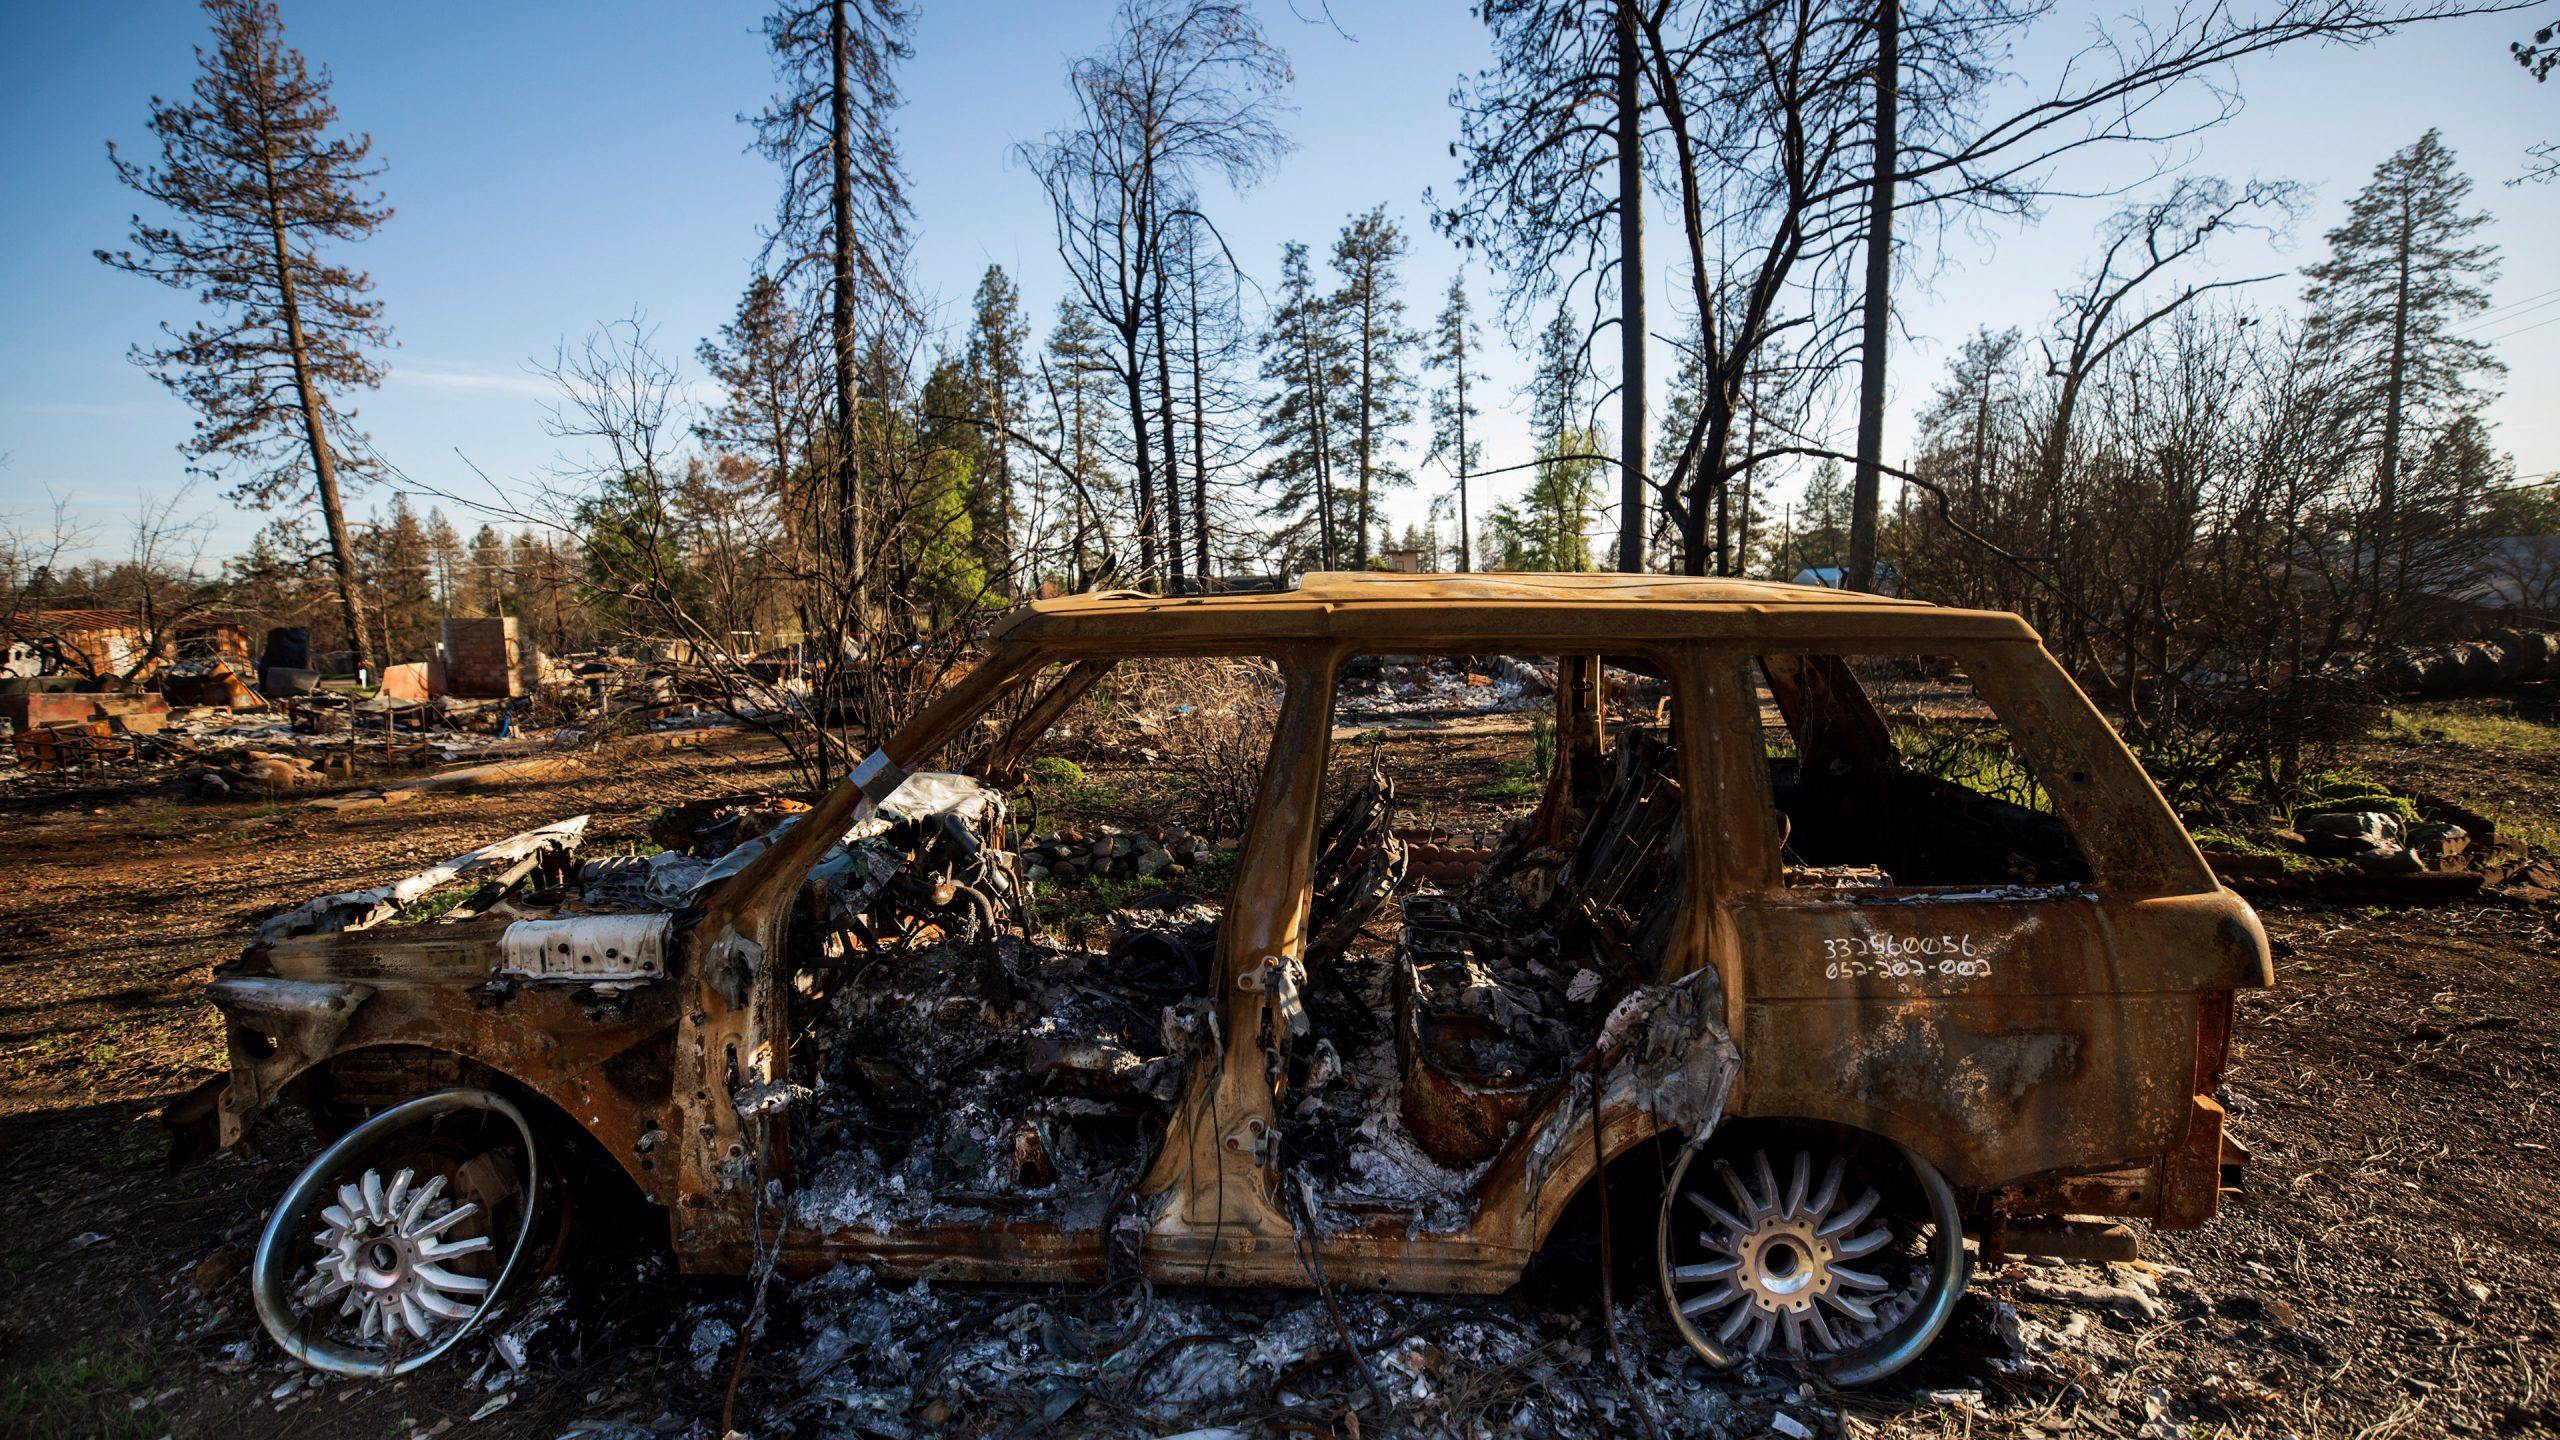 A charred vehicle sits in front of a neighborhood reduced to rubble in Paradise, CA. Photo by Joe Johnston.